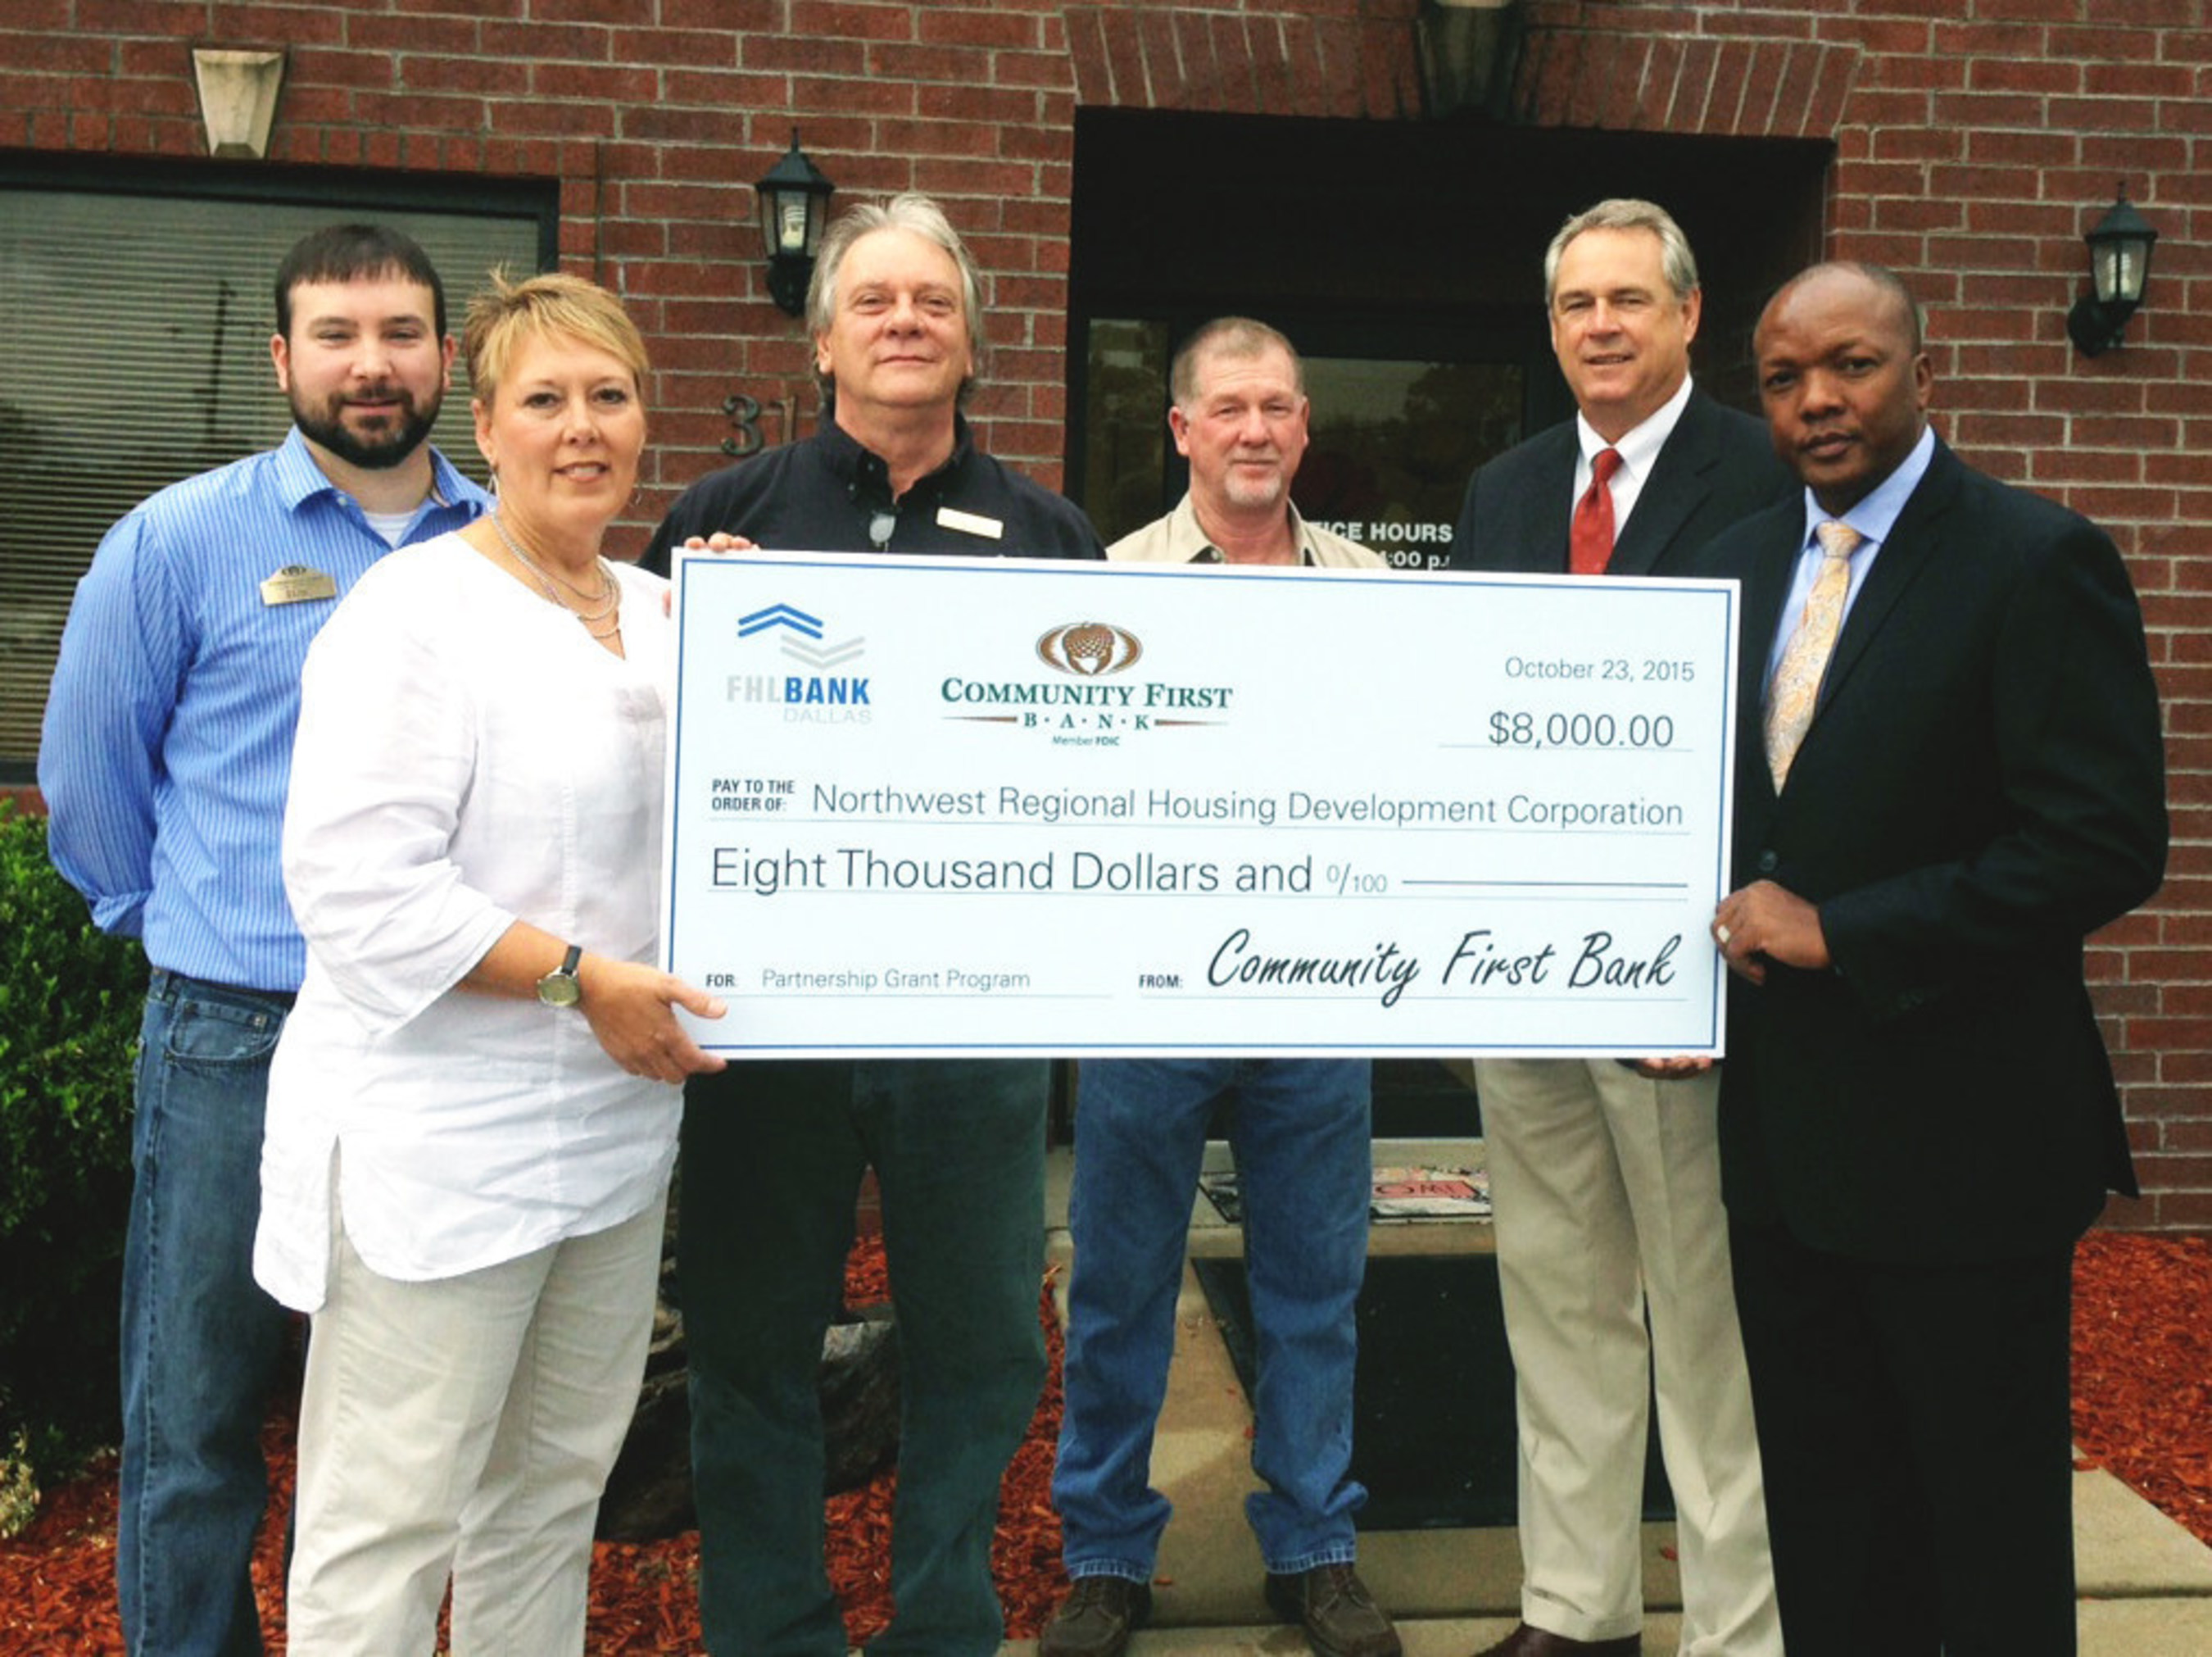 The Federal Home Loan Bank of Dallas and Community First Bank presented Northwest Regional Housing Development Corporation with an $8,000 PGP check last week. Pictured (from left): Eric Parker and Carolyn Arnold, Community First Bank; Troy Clark and Neal Gibson, Northwest Regional Housing Authority; Mike Lambert and Bruce Hatton, Federal Home Loan Bank of Dallas.